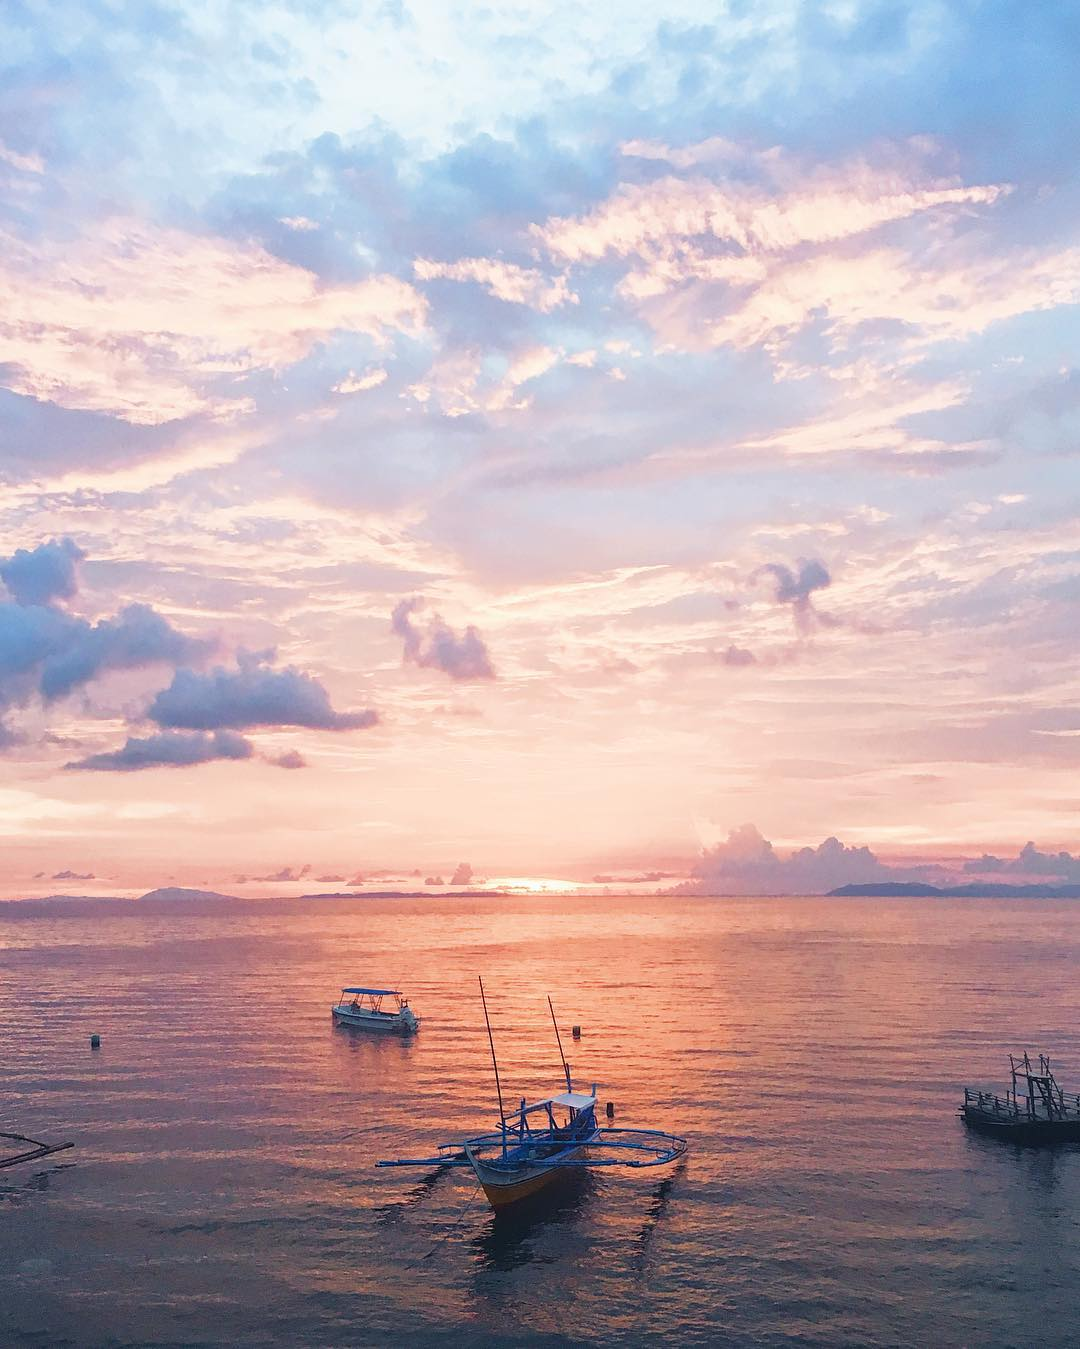 Pink sunset with purple clouds and fishing boats floating on still water in the Philippines